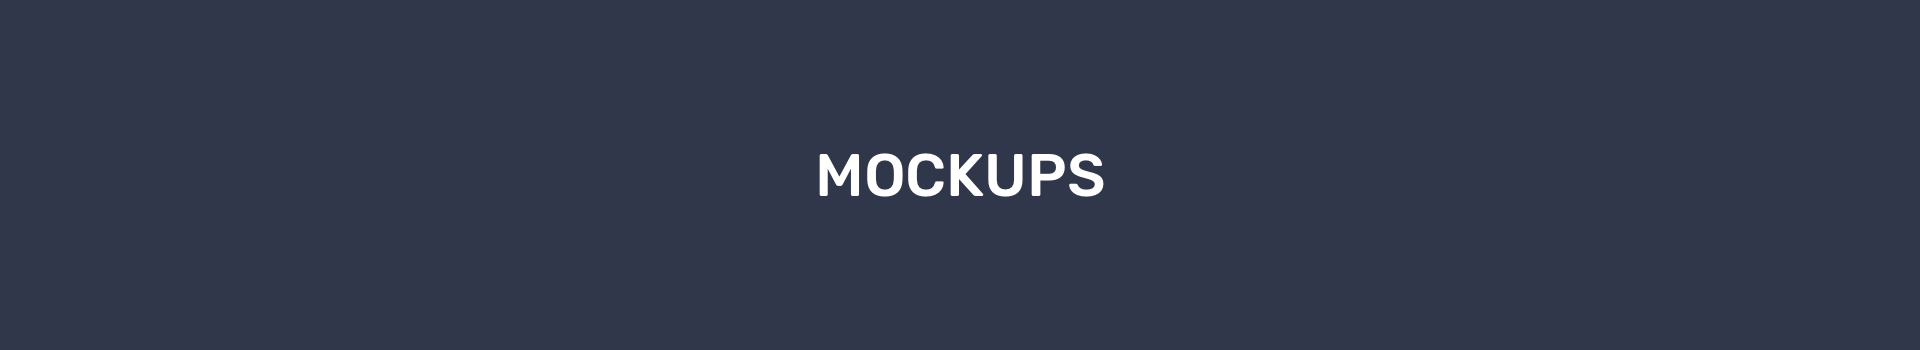 section_mockups.png